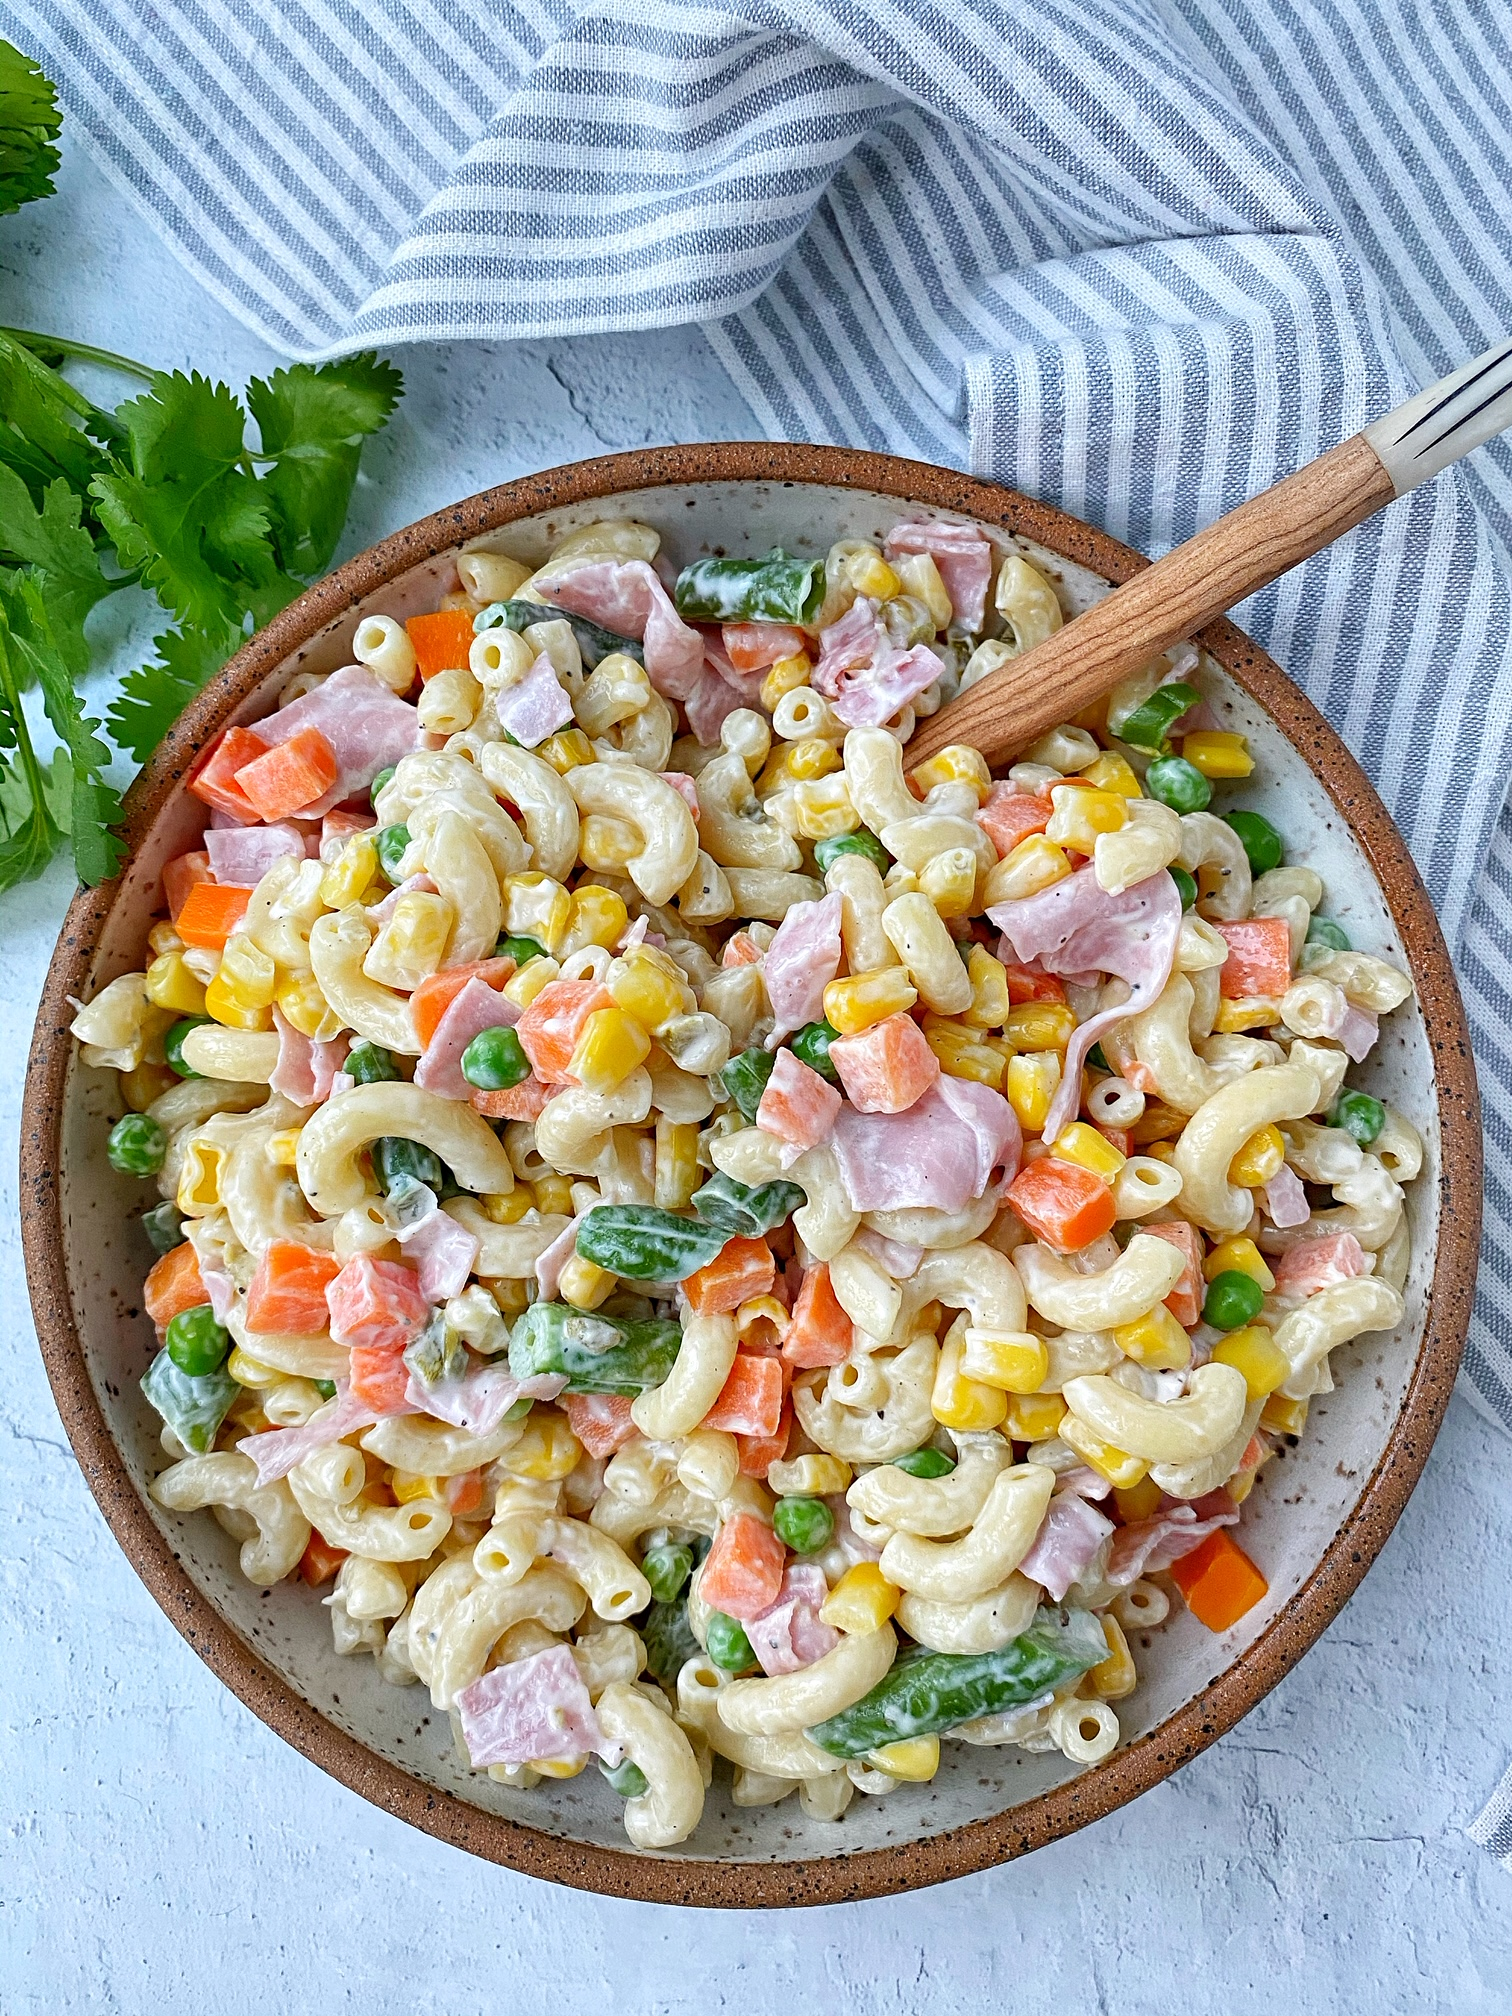 Bowl with macaroni salad. Cilantro garnish